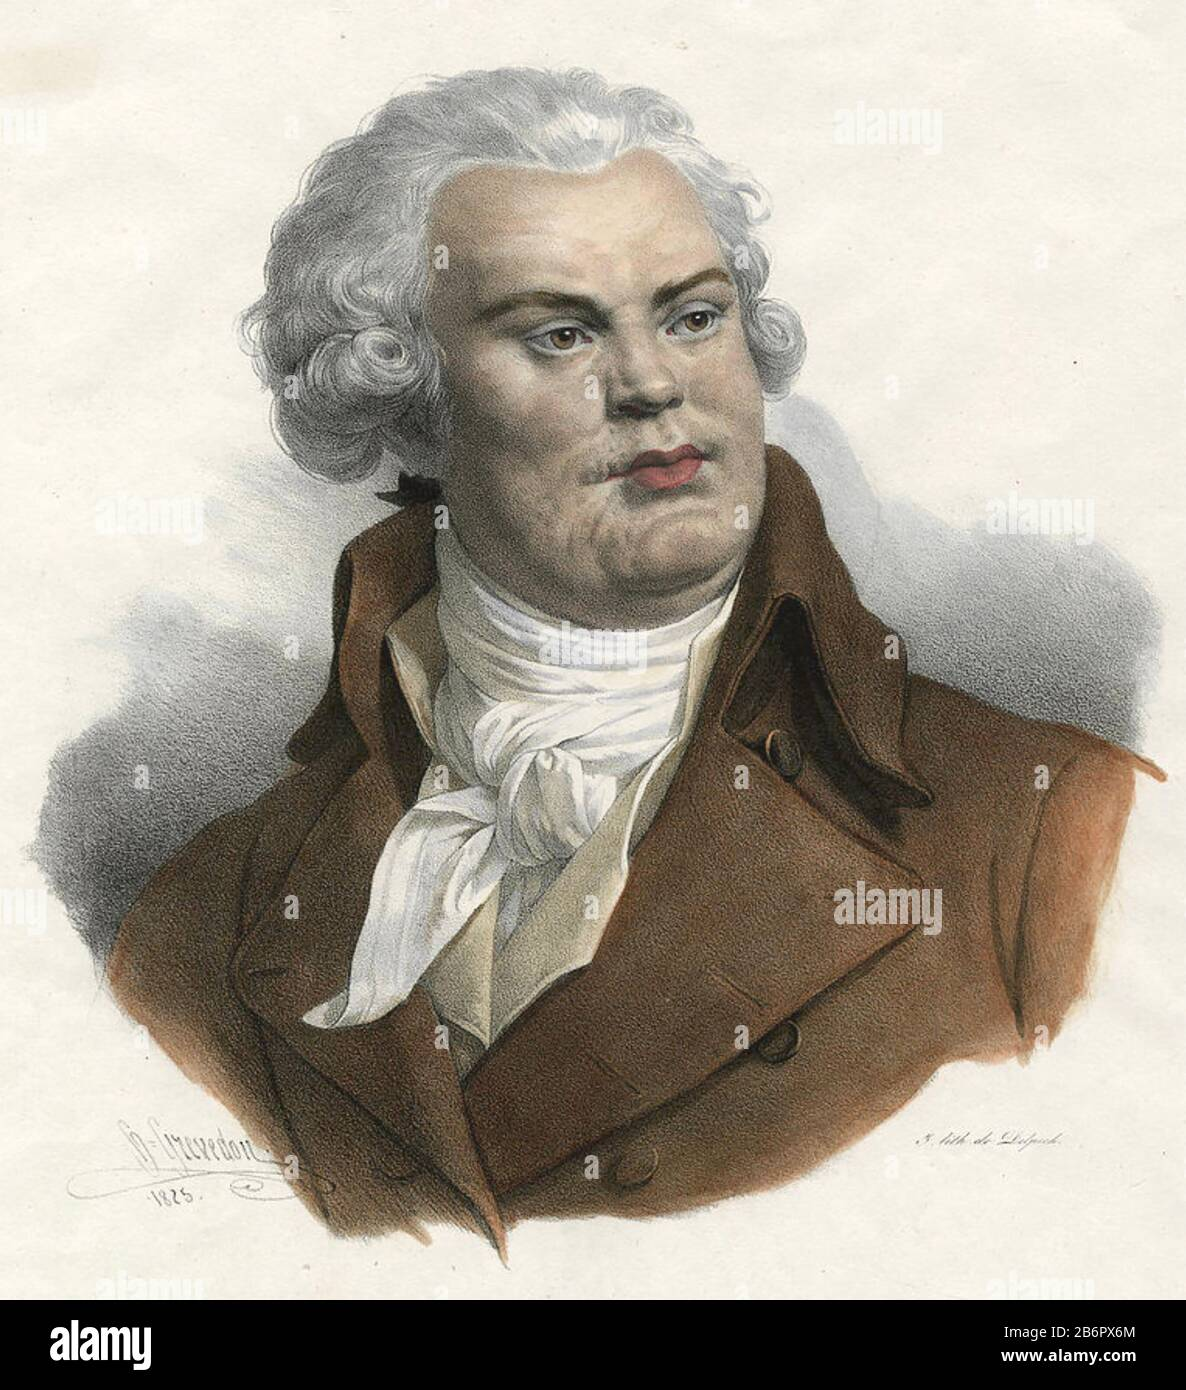 Georges Danton georges danton (1759-1794) french revolutionary leader about